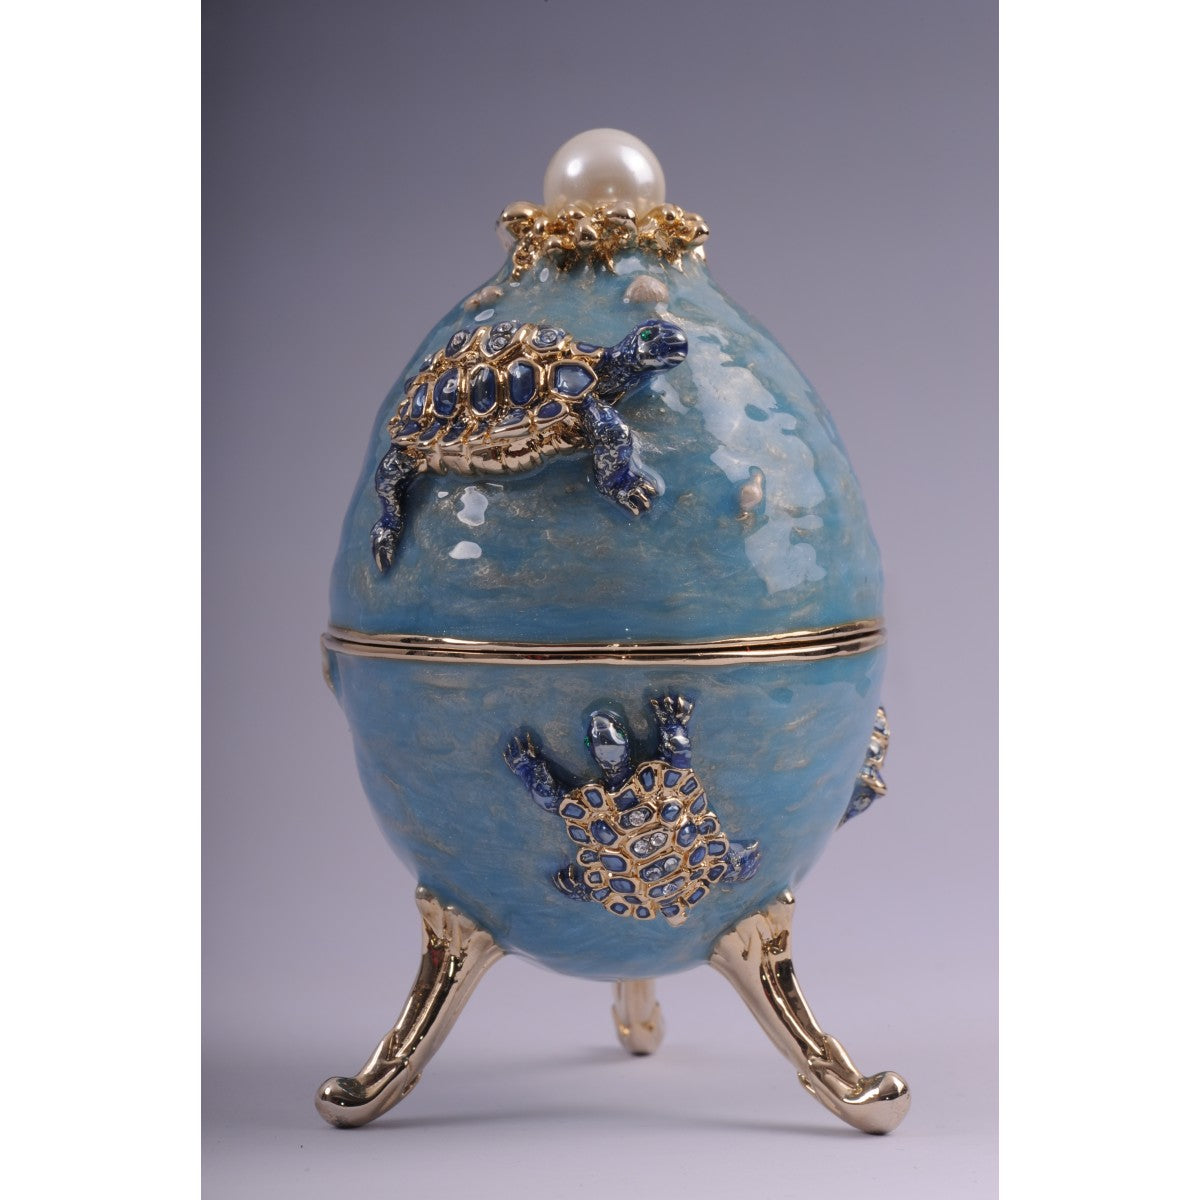 Faberge egg with turtles by Keren Kopal